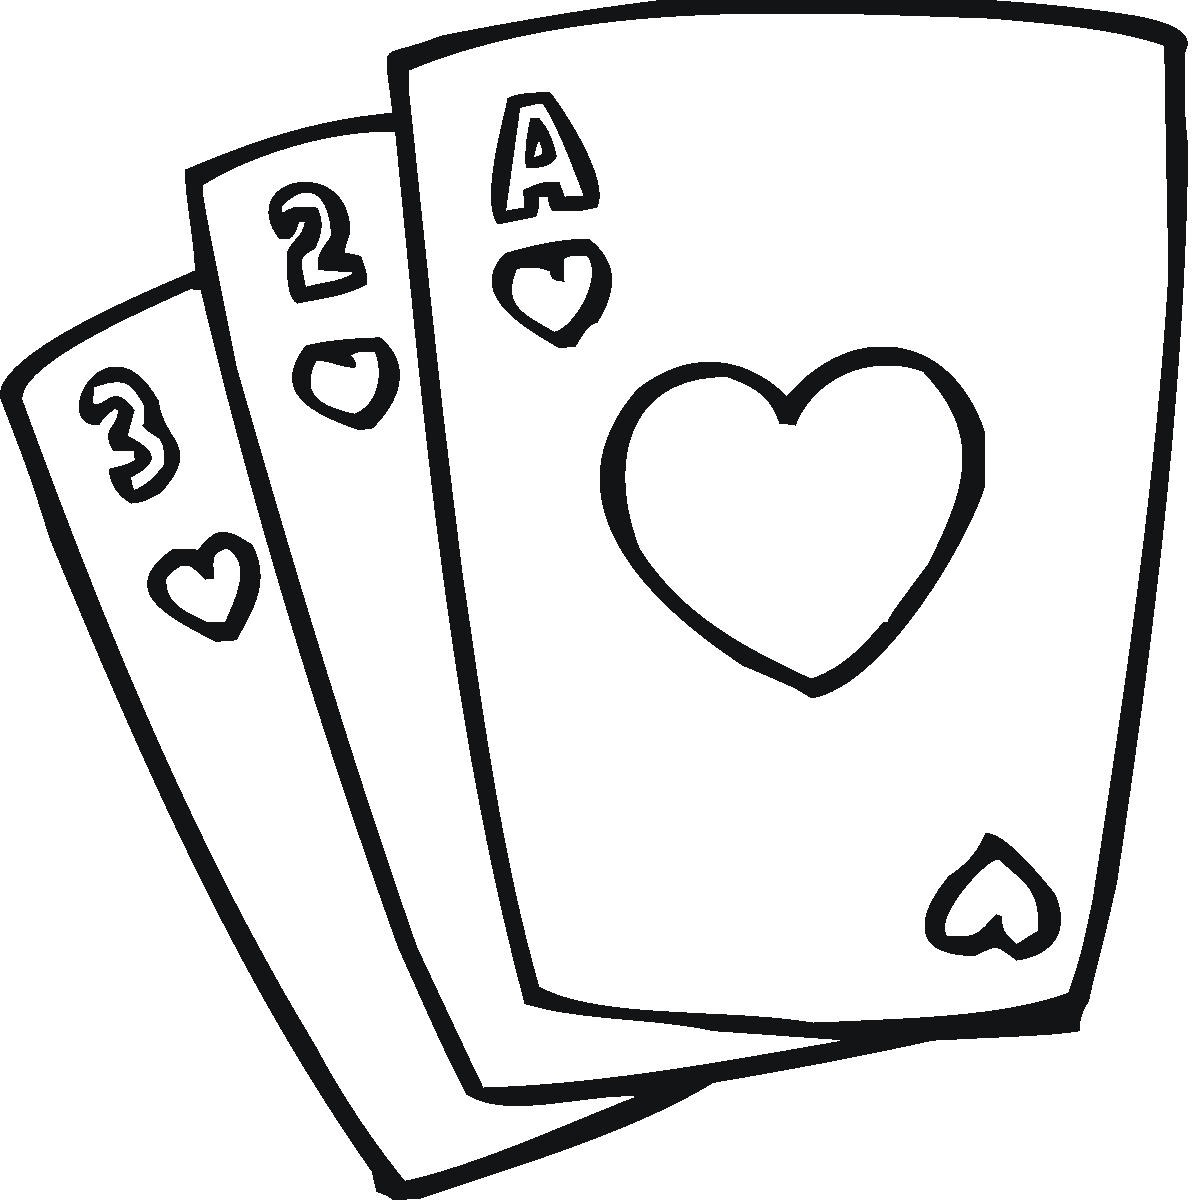 Playing card images clipart png freeuse download Free Playing Card Clipart, Download Free Clip Art, Free Clip Art on ... png freeuse download